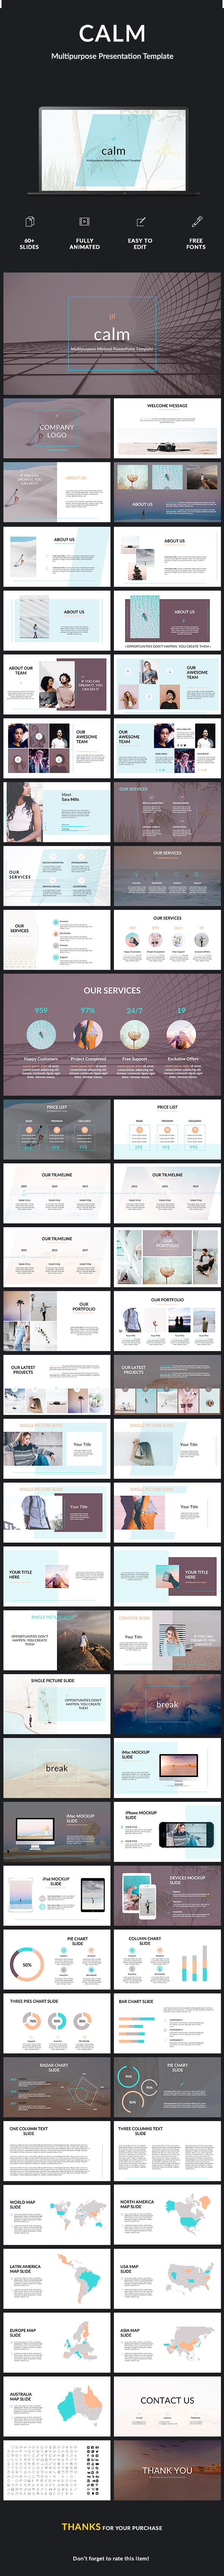 Calm - Minimal Business Powerpoint Template - PowerPoint Templates Presentation Templates